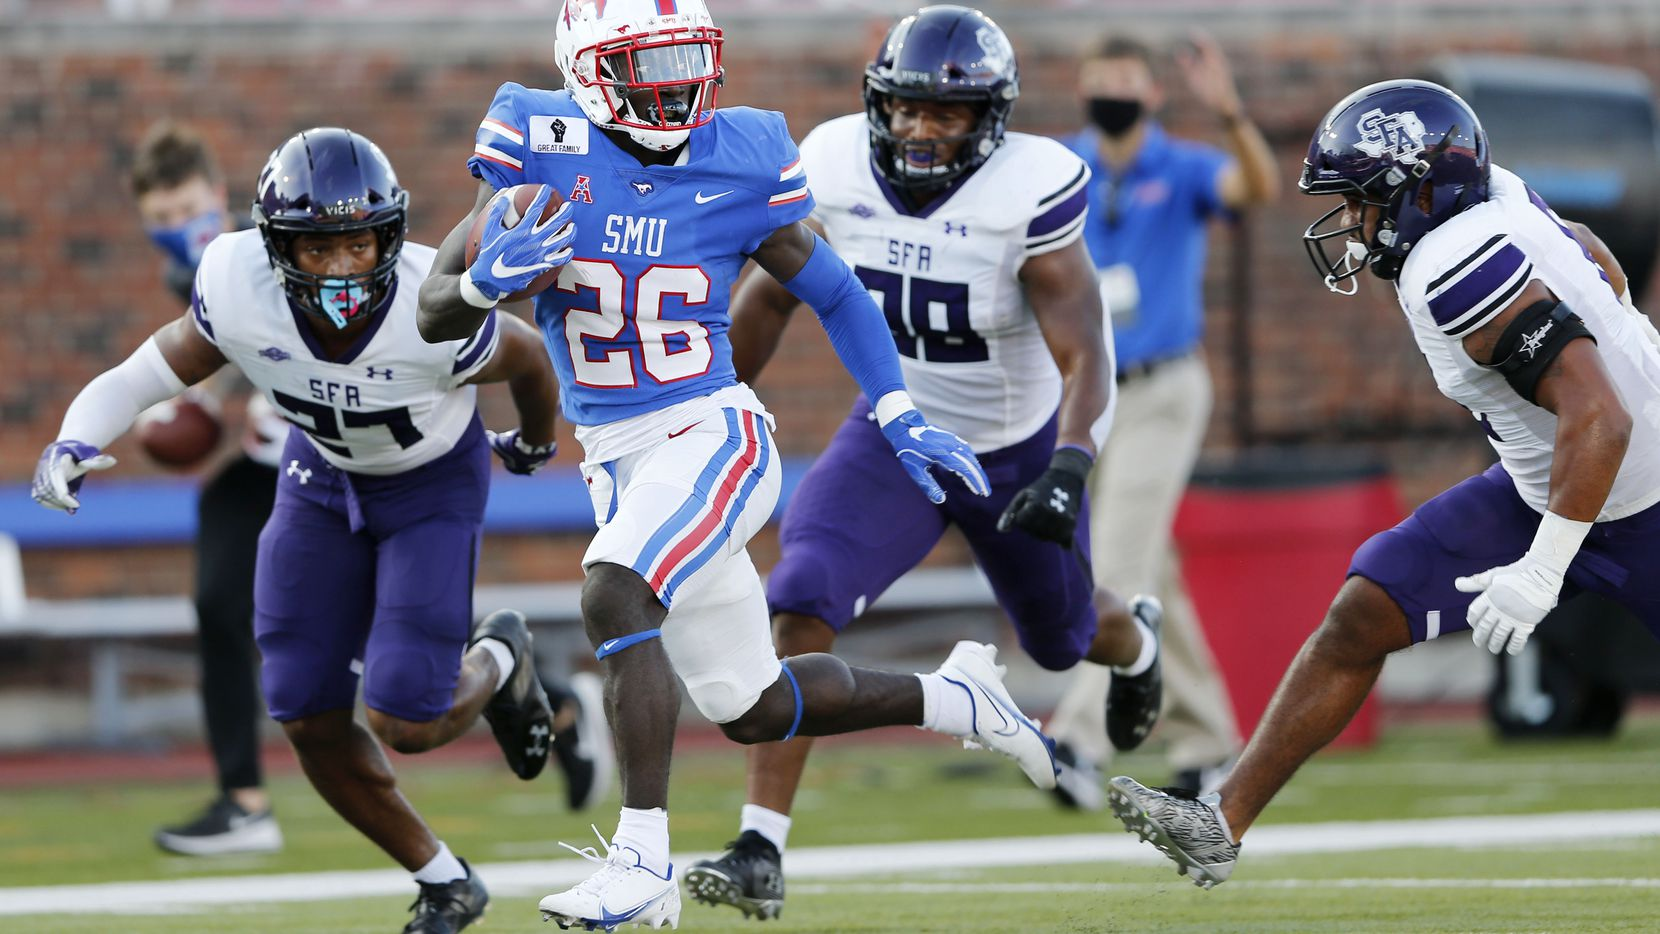 Southern Methodist Mustangs running back Ulysses Bentley IV (26) breaks away from the Stephen F. Austin Lumberjacks defense for a touchdown during the first half of their home opener at Ford Stadium in Dallas, on Saturday, September 26, 2020.